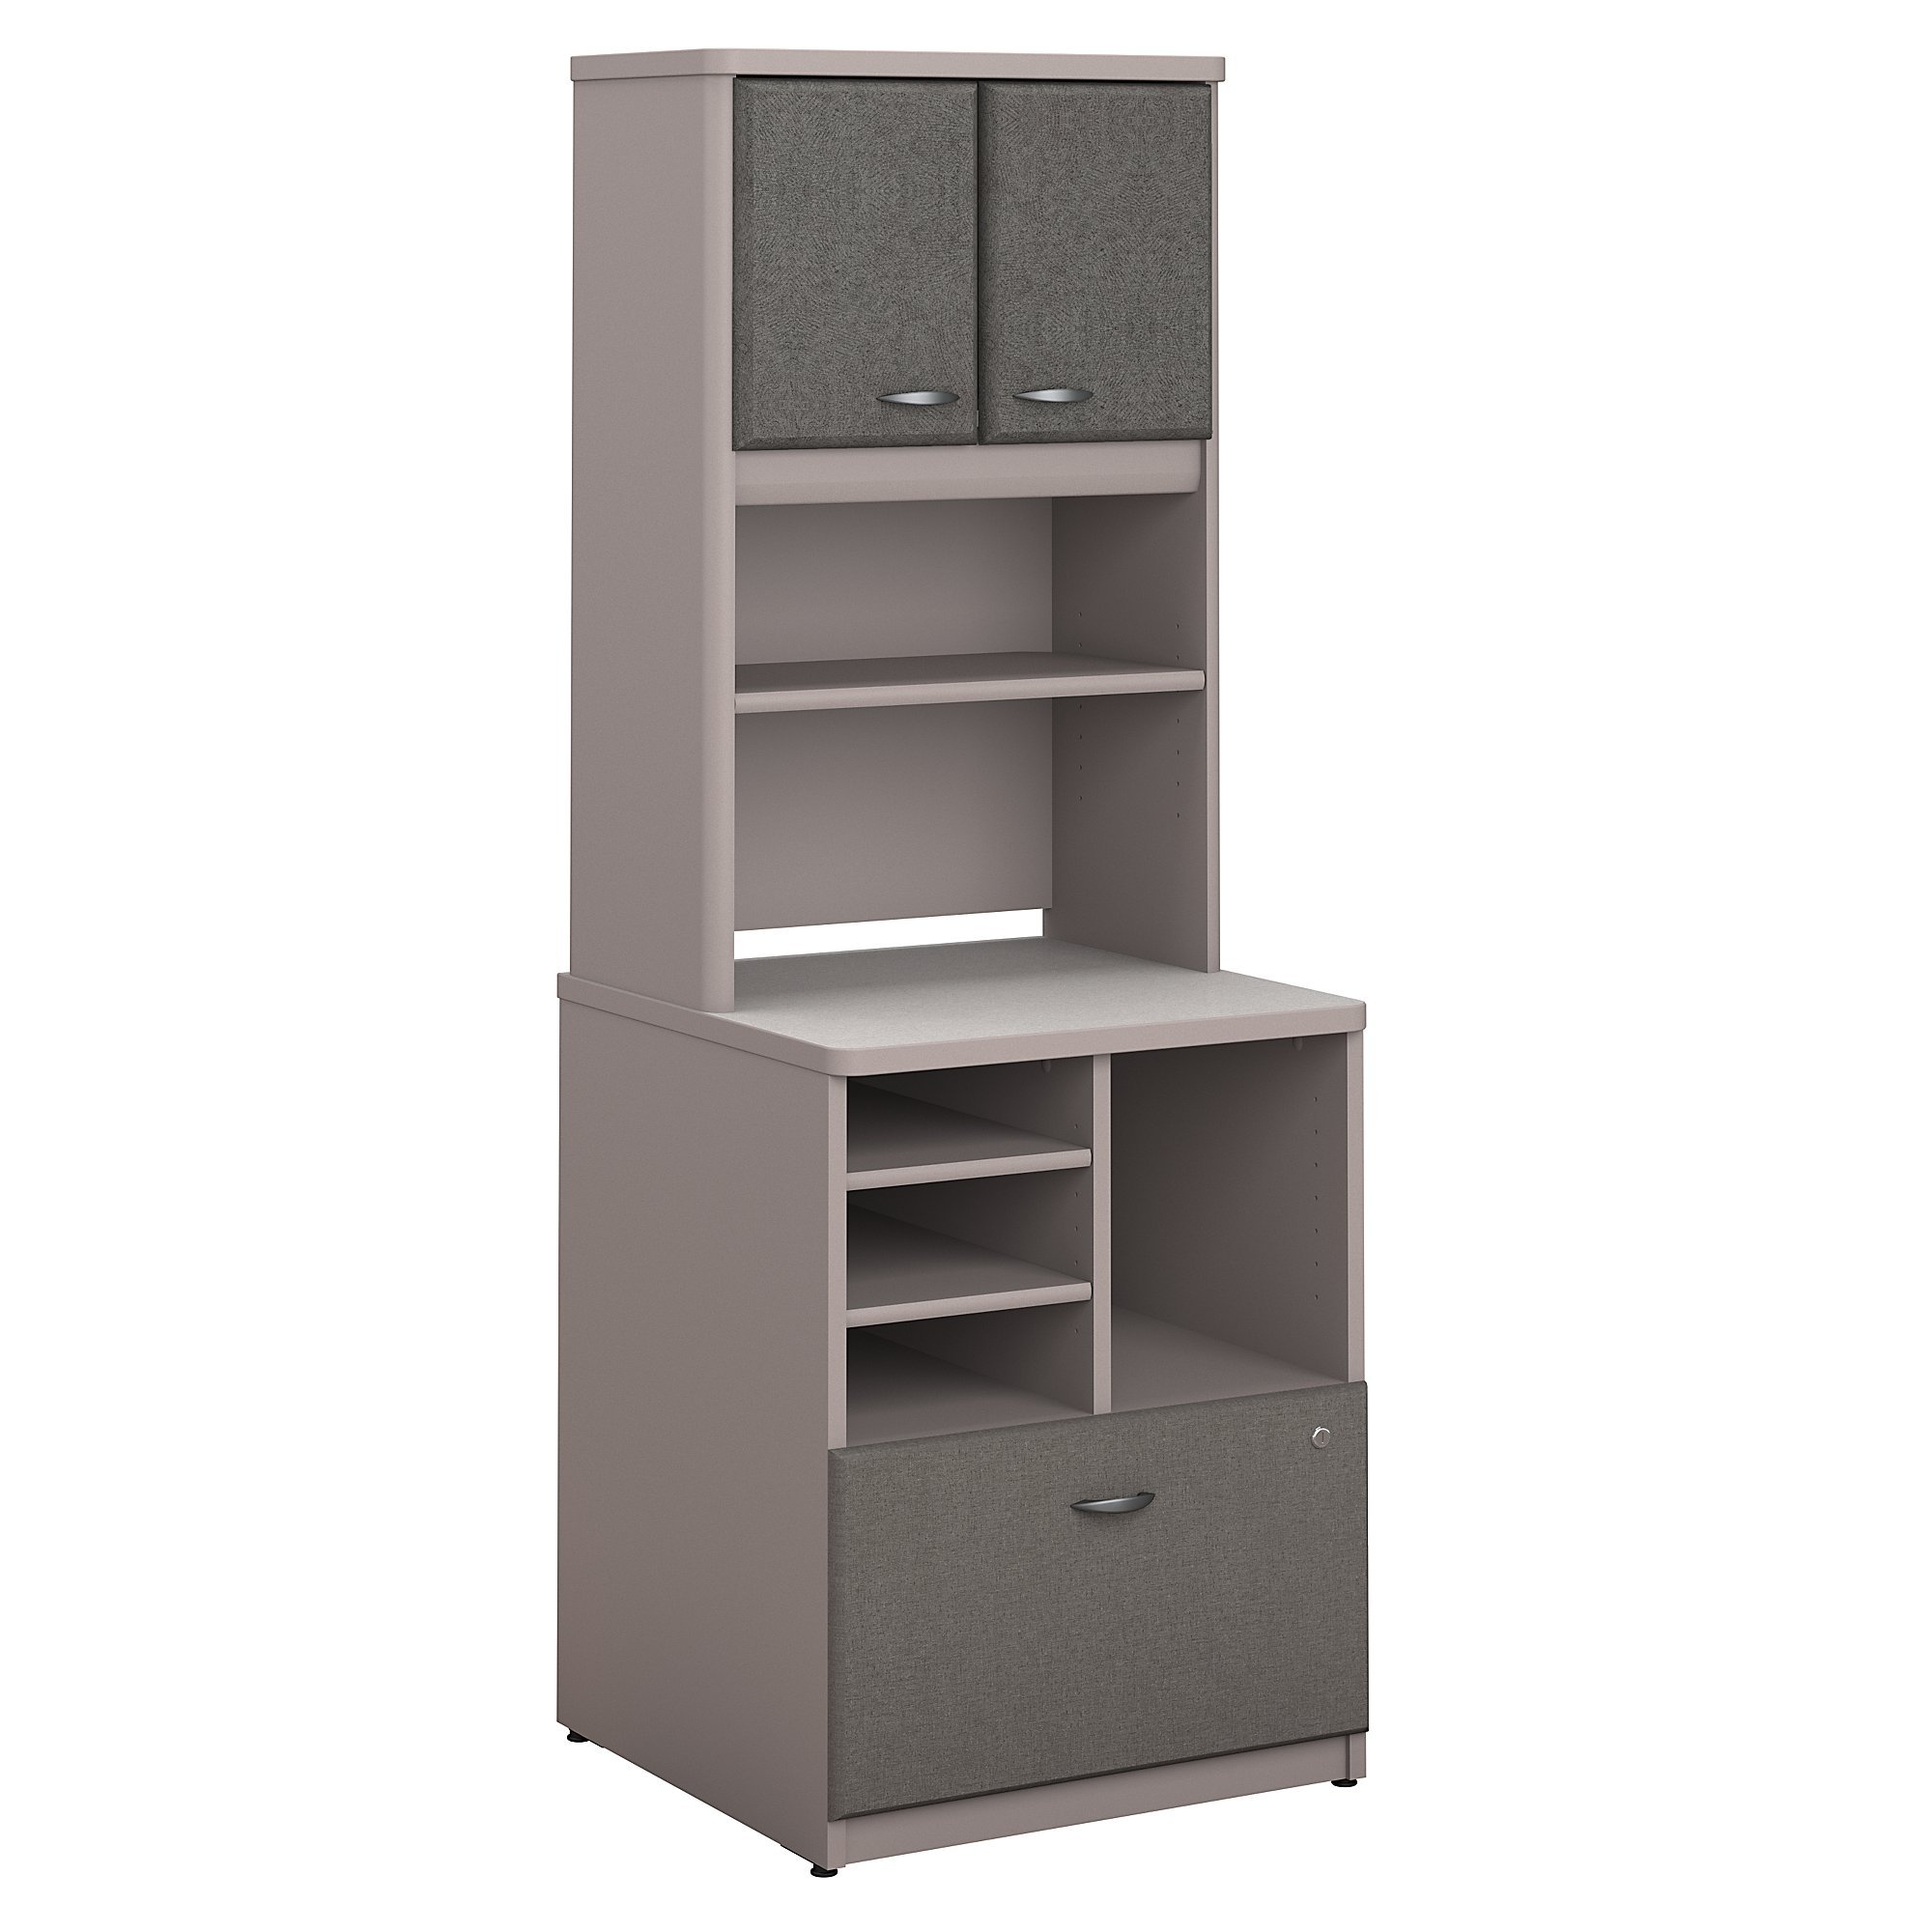 Bush Business Furniture Series A 24W Piler Filer Cabinet with Hutch in Pewter and White Spectrum by Bush Business Furniture